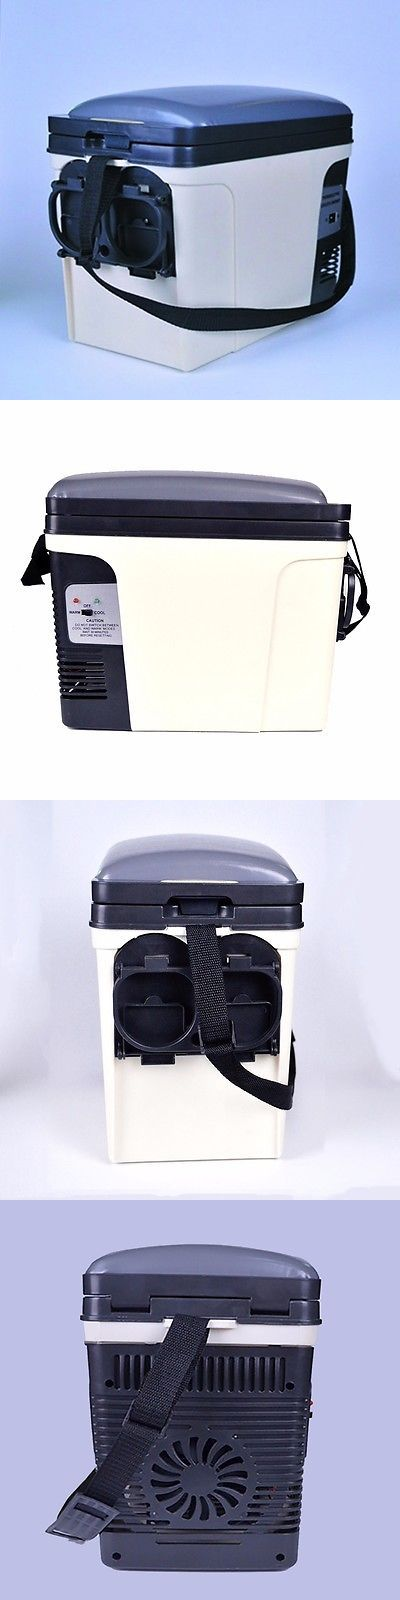 12-Volt Portable Appliances: Thermoelectric Hiking Cooler Warmer Ac 110V Dc 12V Mini Fridge Car Truck Home 6L -> BUY IT NOW ONLY: $48.59 on eBay!